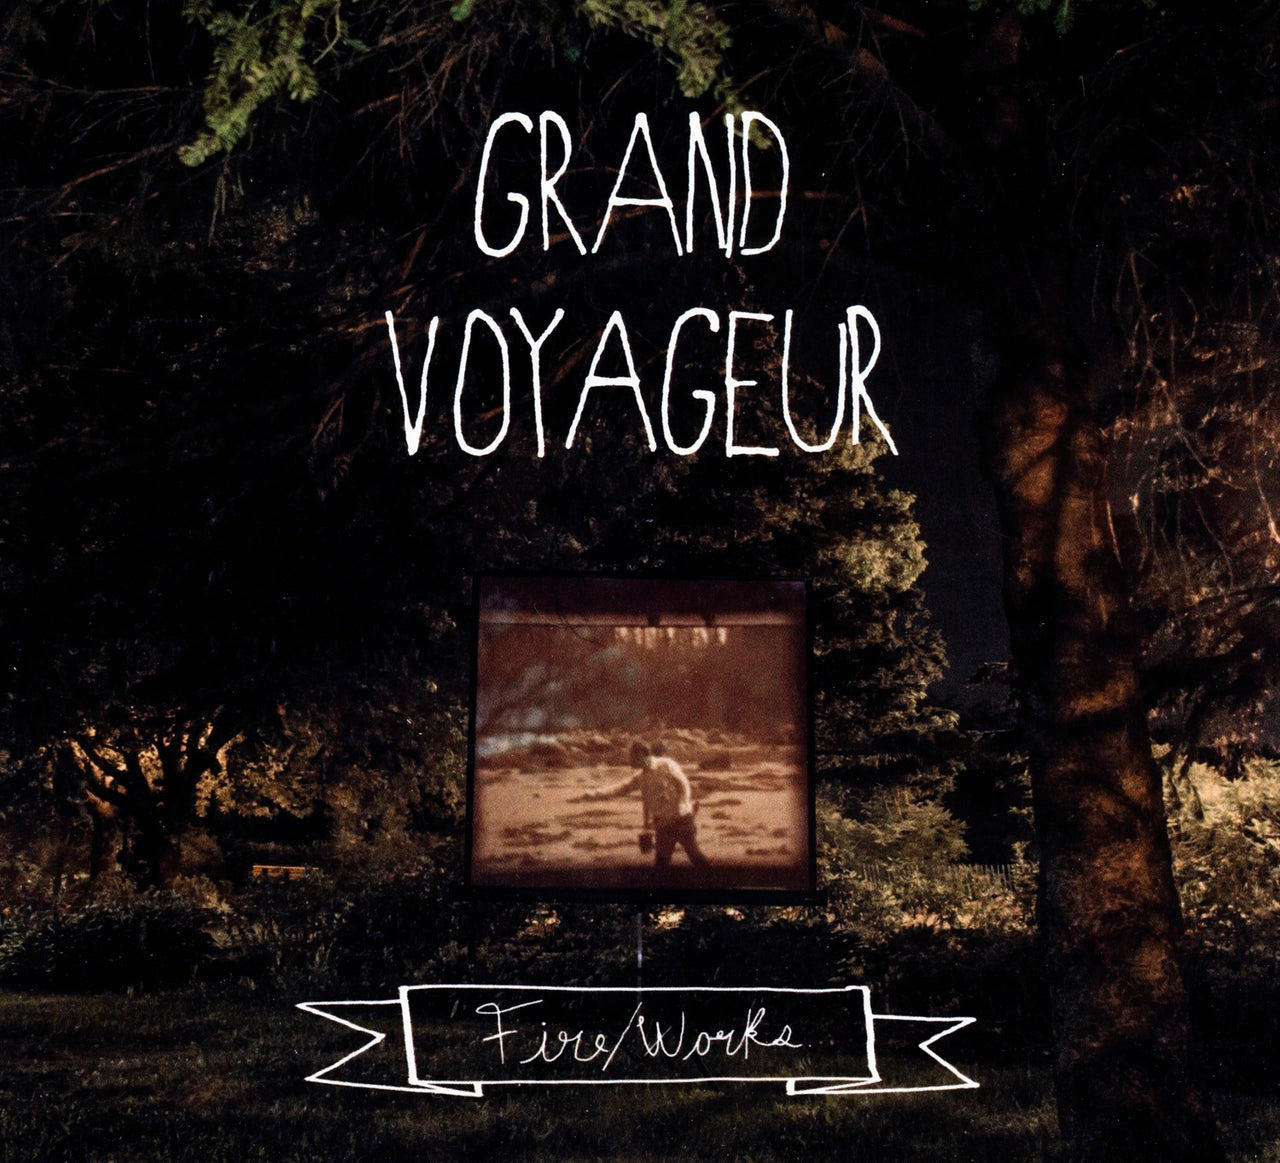 Fire/Works : Grand voyageur  CD